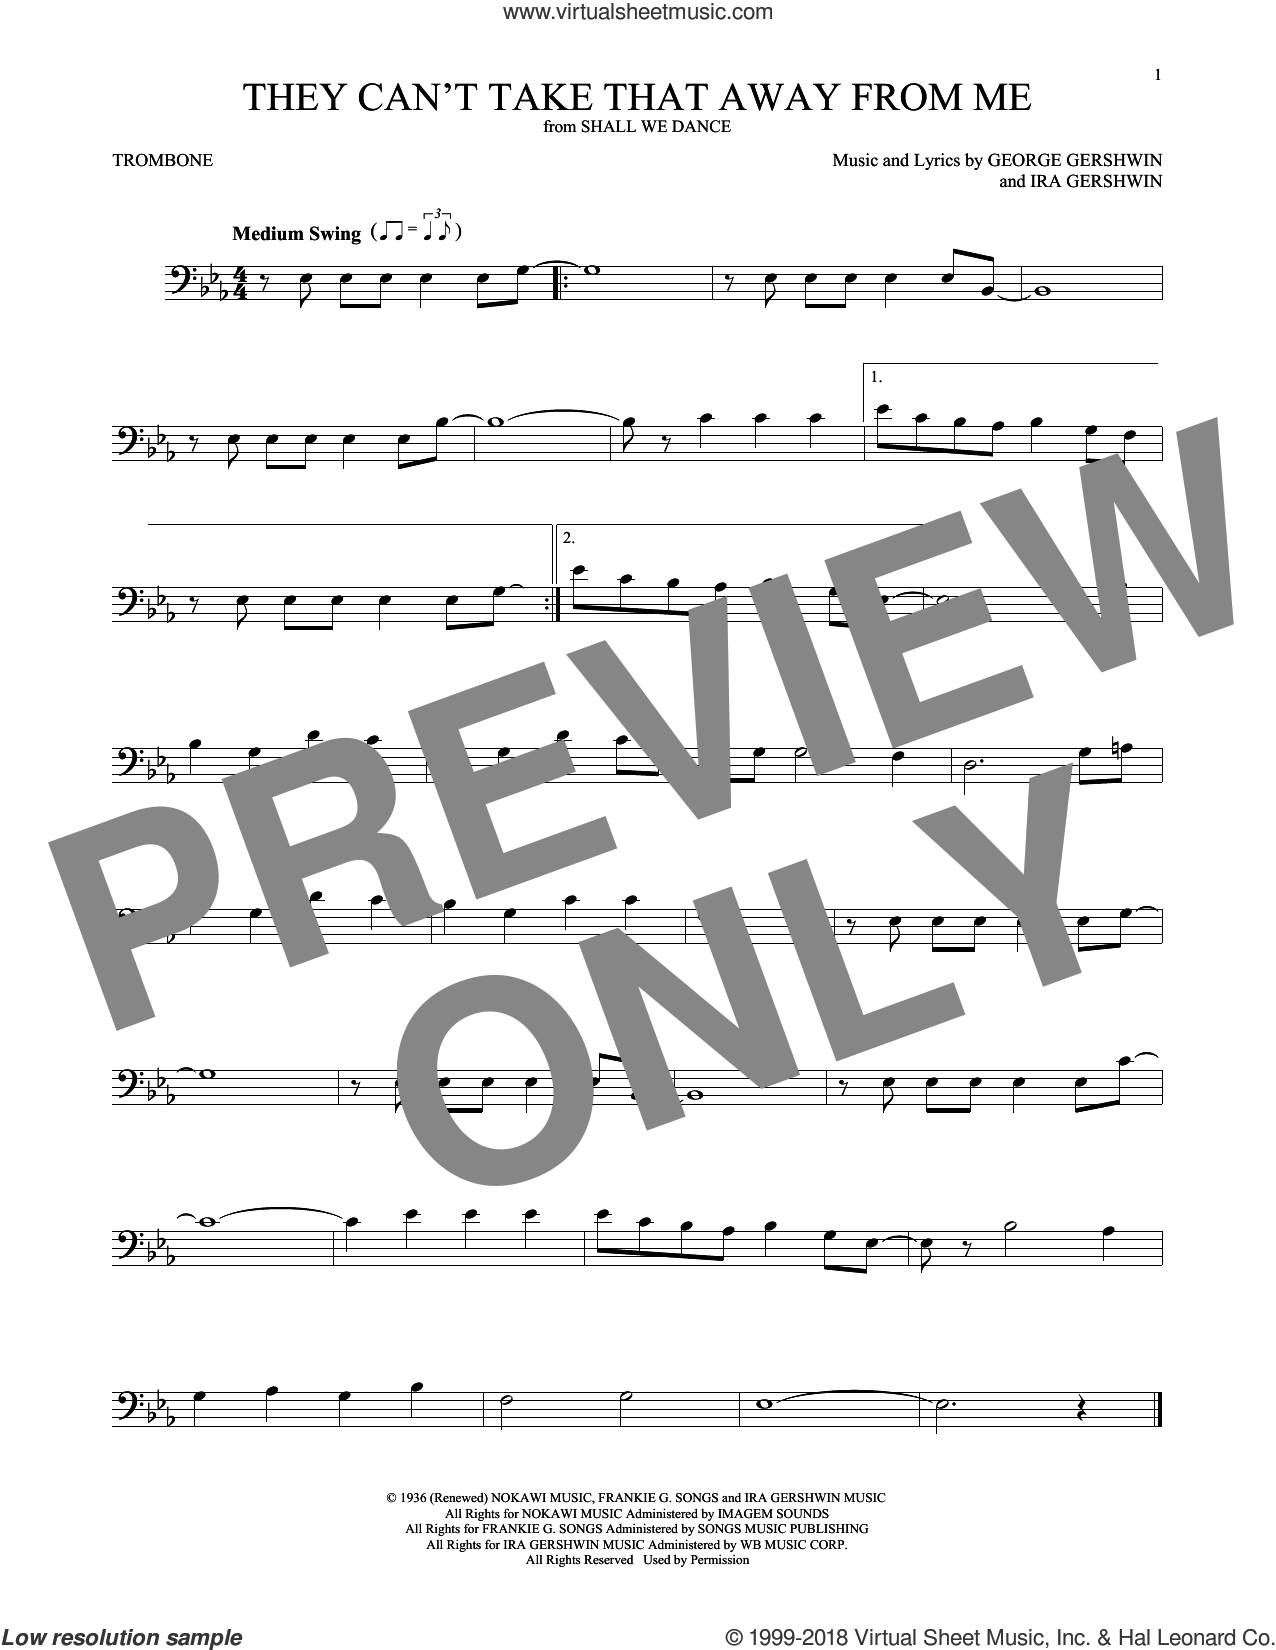 They Can't Take That Away From Me sheet music for trombone solo by Frank Sinatra, George Gershwin and Ira Gershwin, intermediate skill level